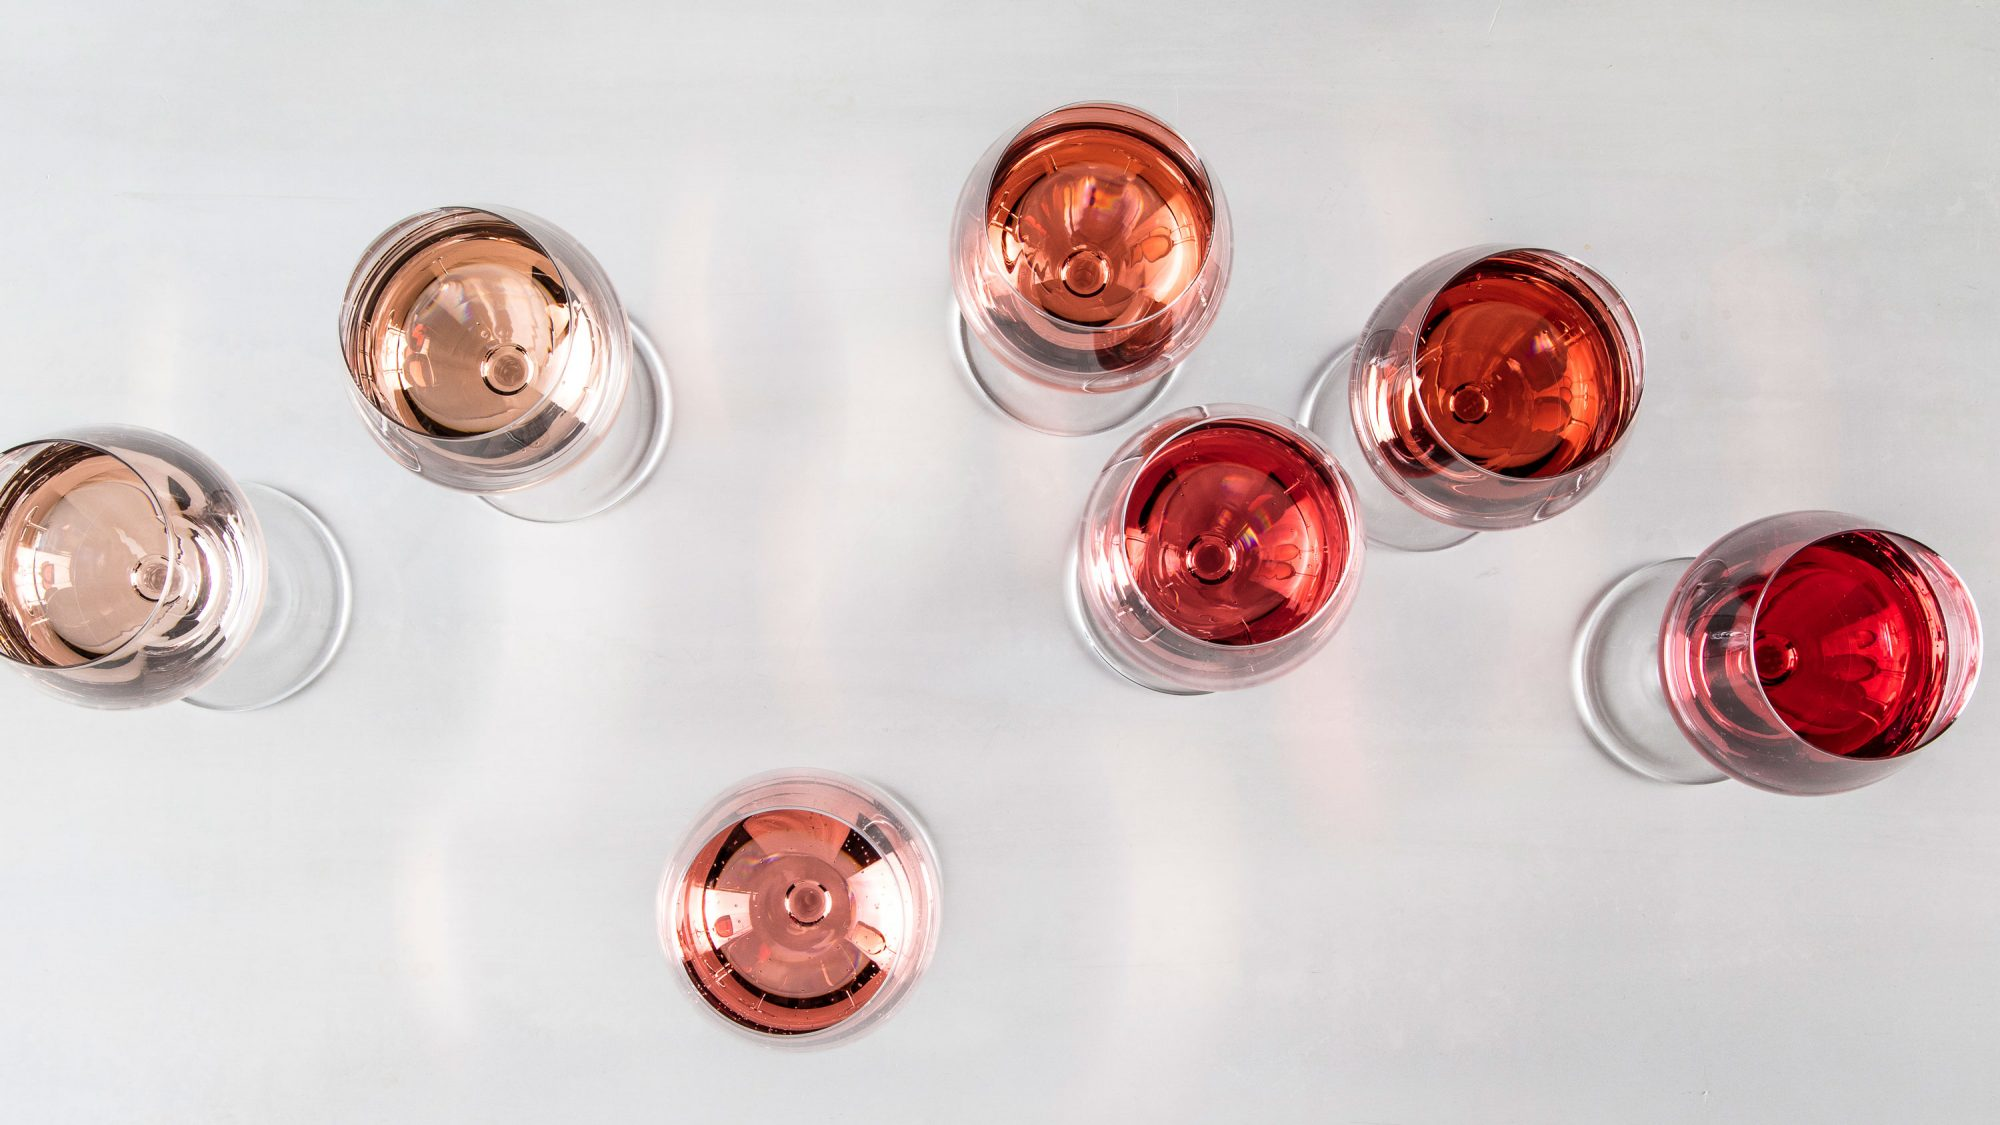 Bon Jovi's Rosé Has Already Sold Out to Suppliers